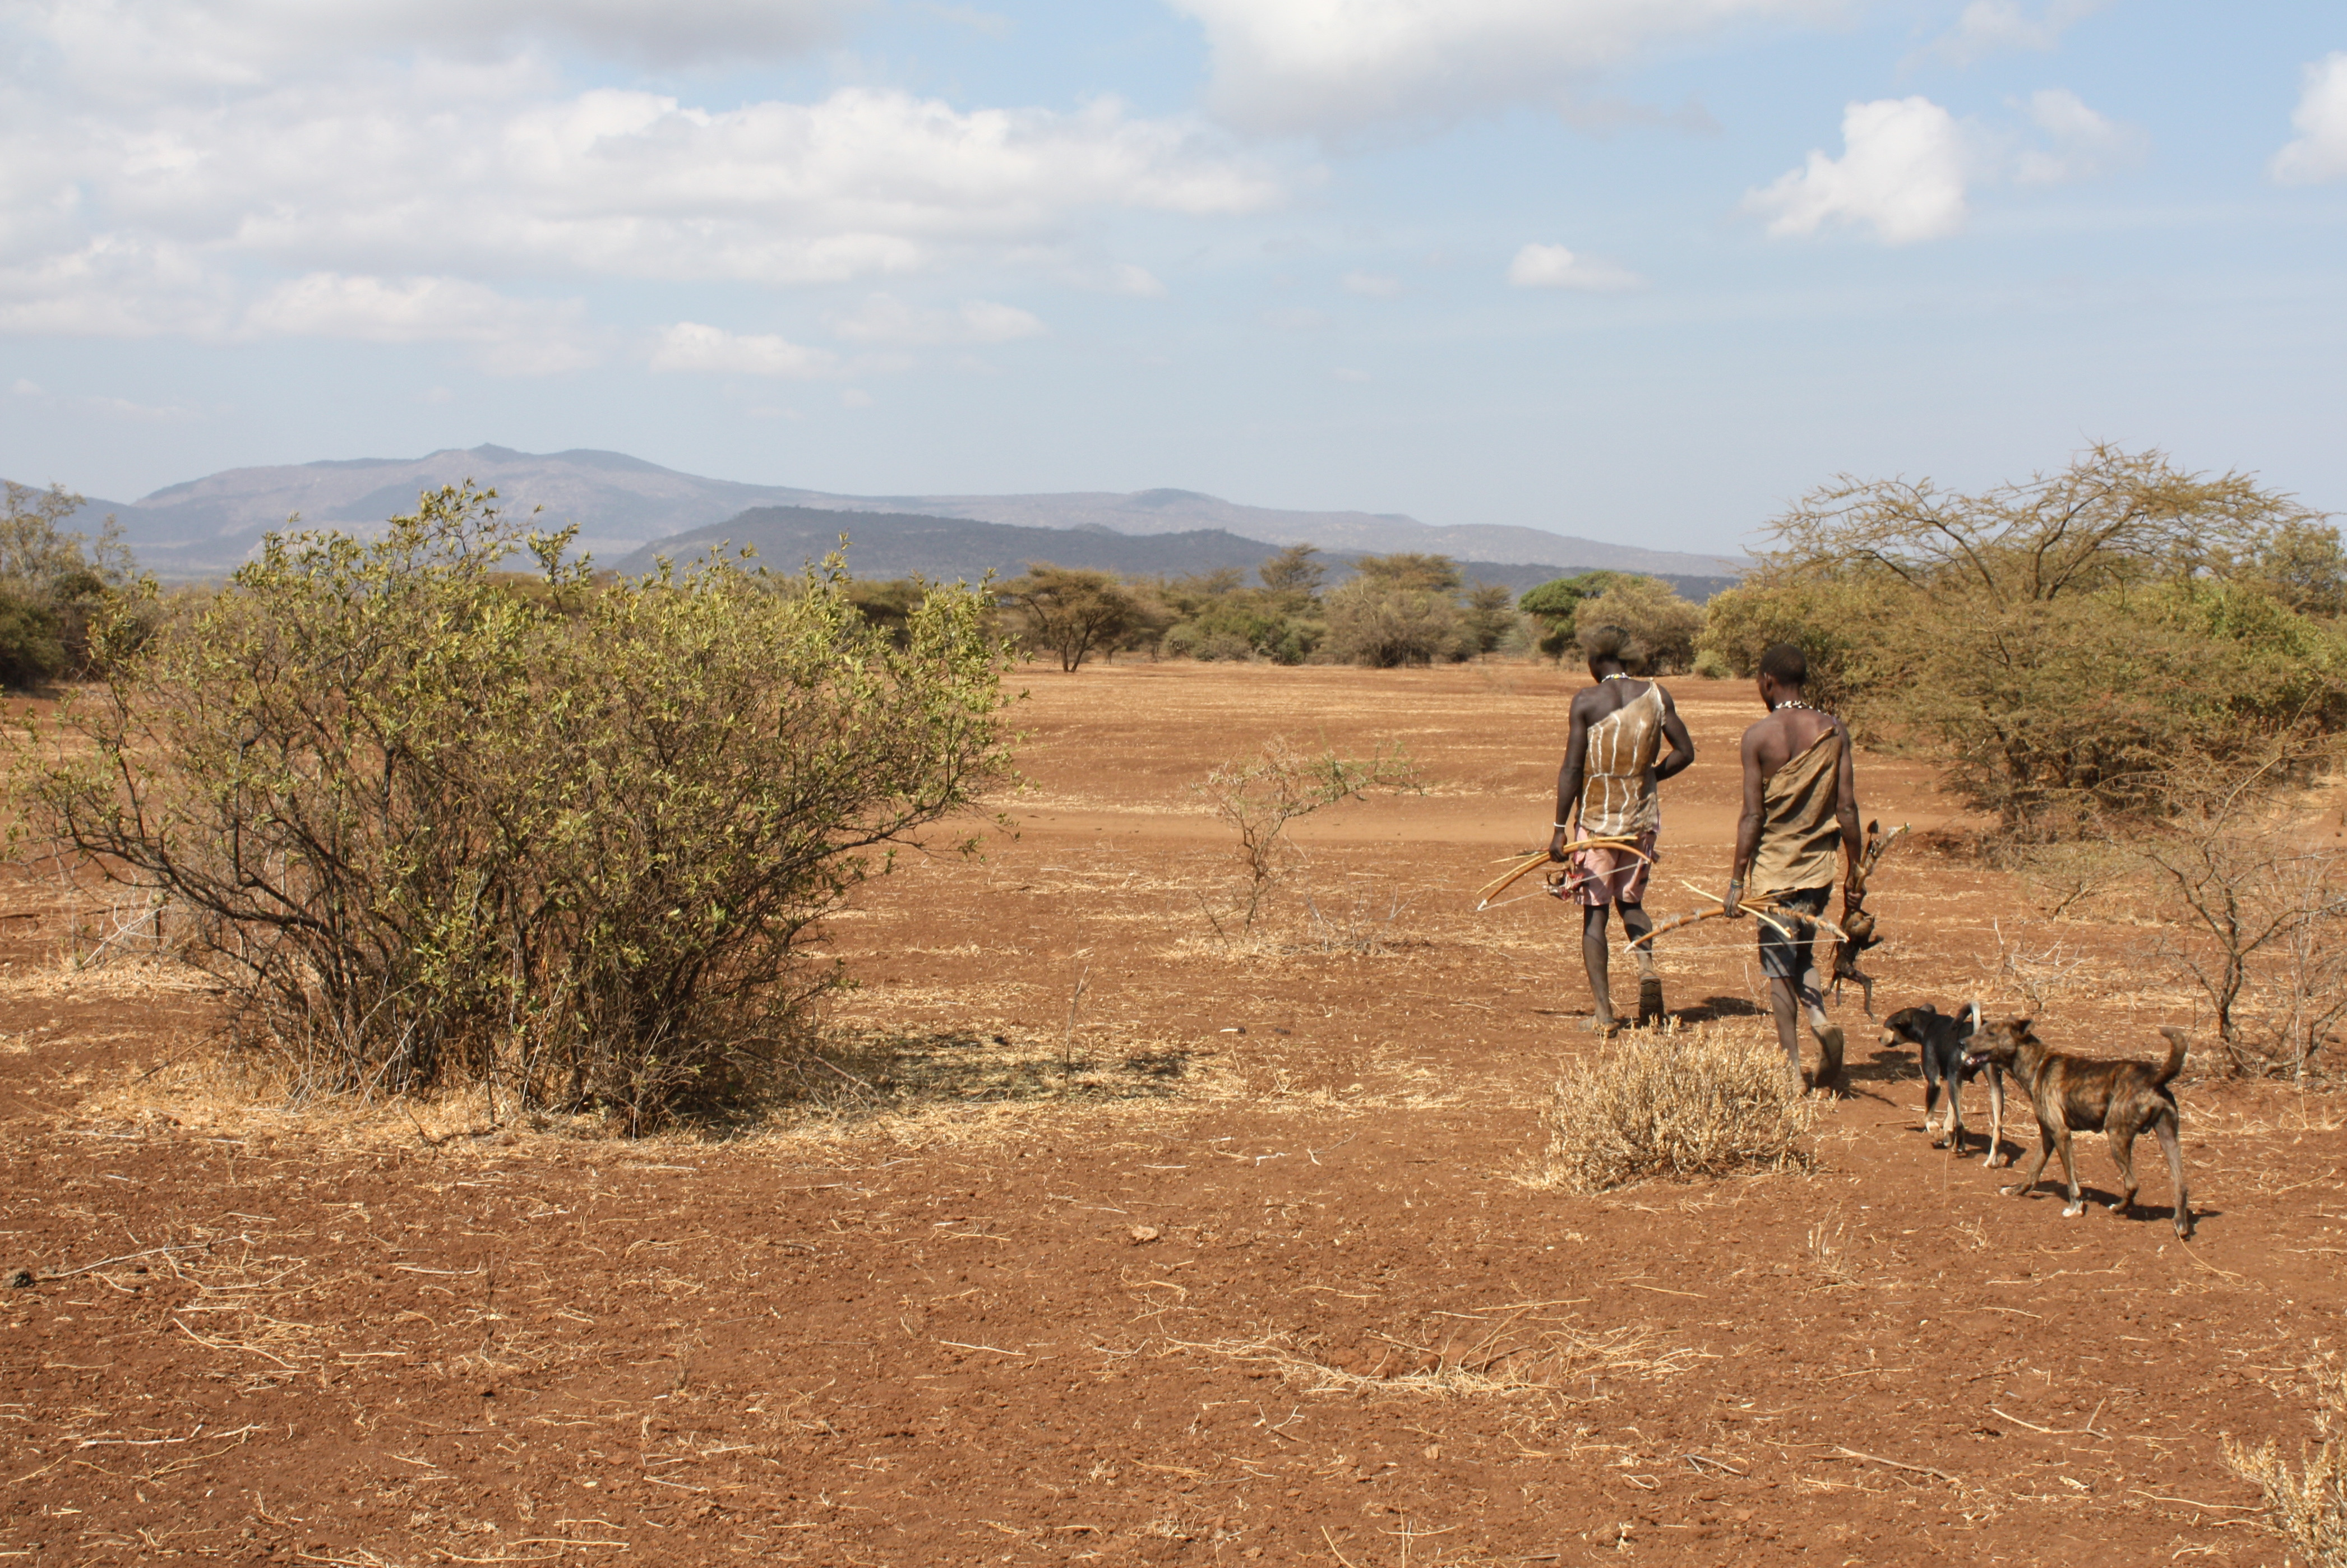 Hadza hunter-gatherers in Africa